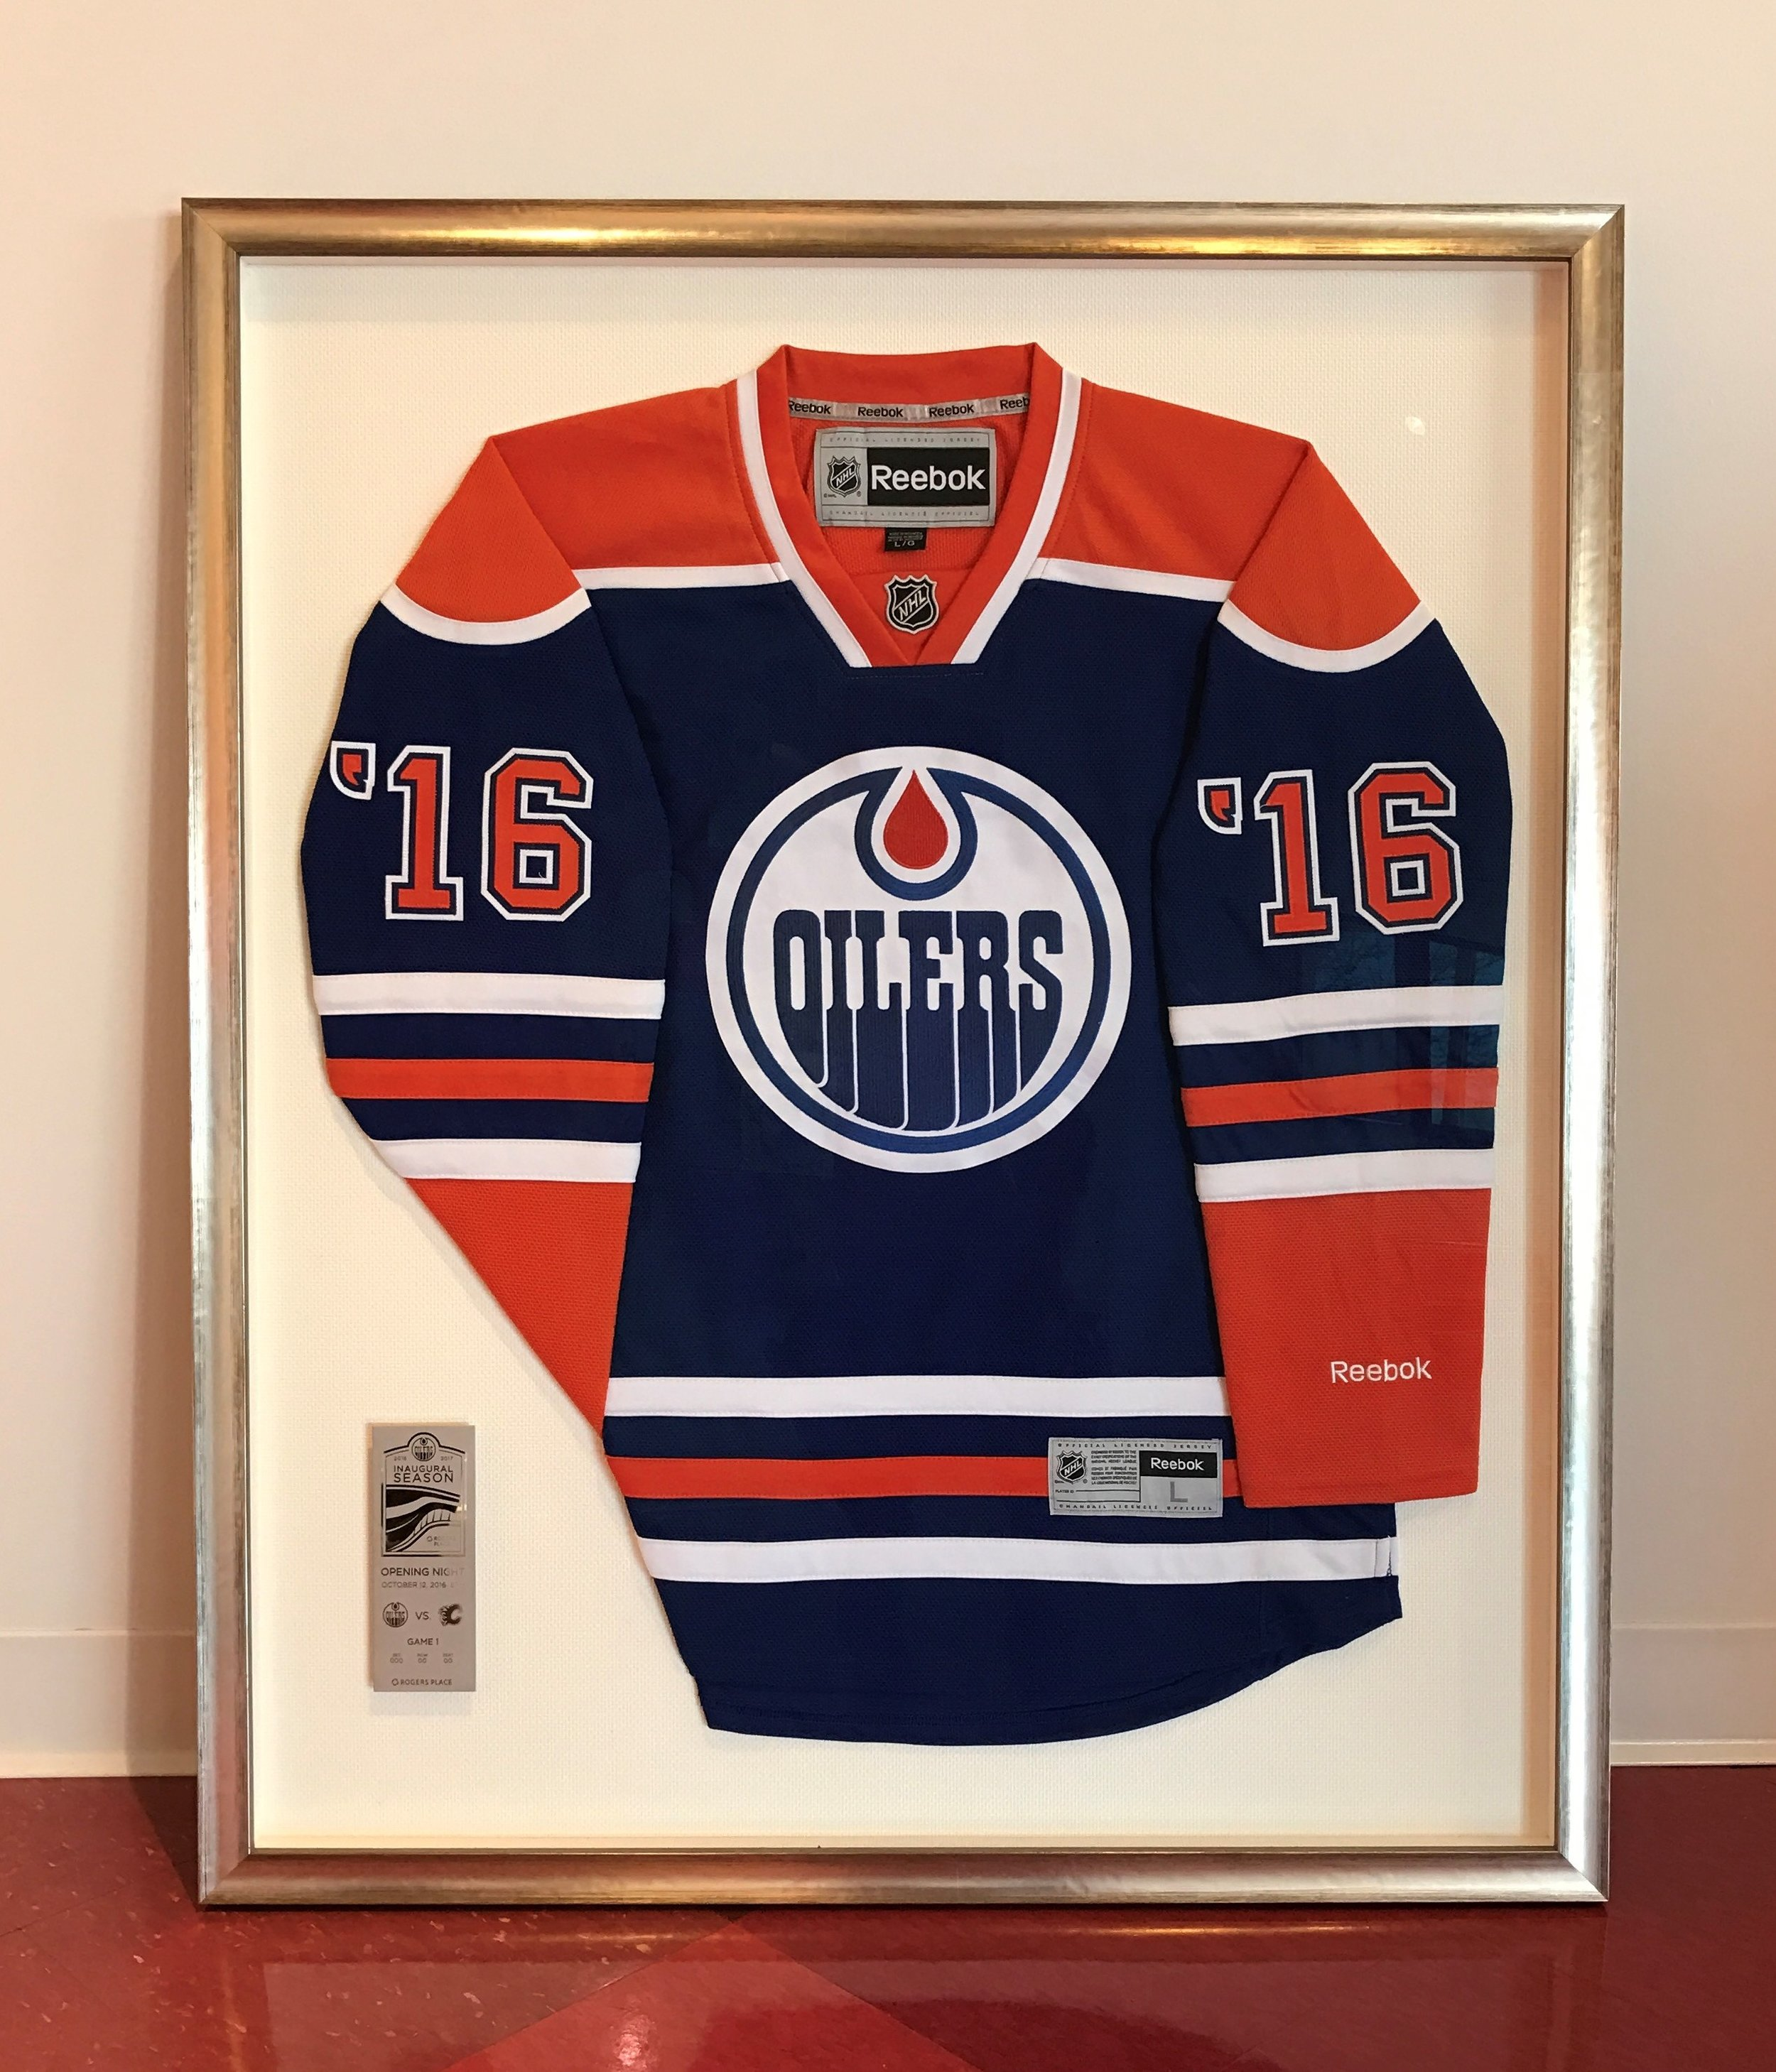 Oilers hockey jersey with ticket stub